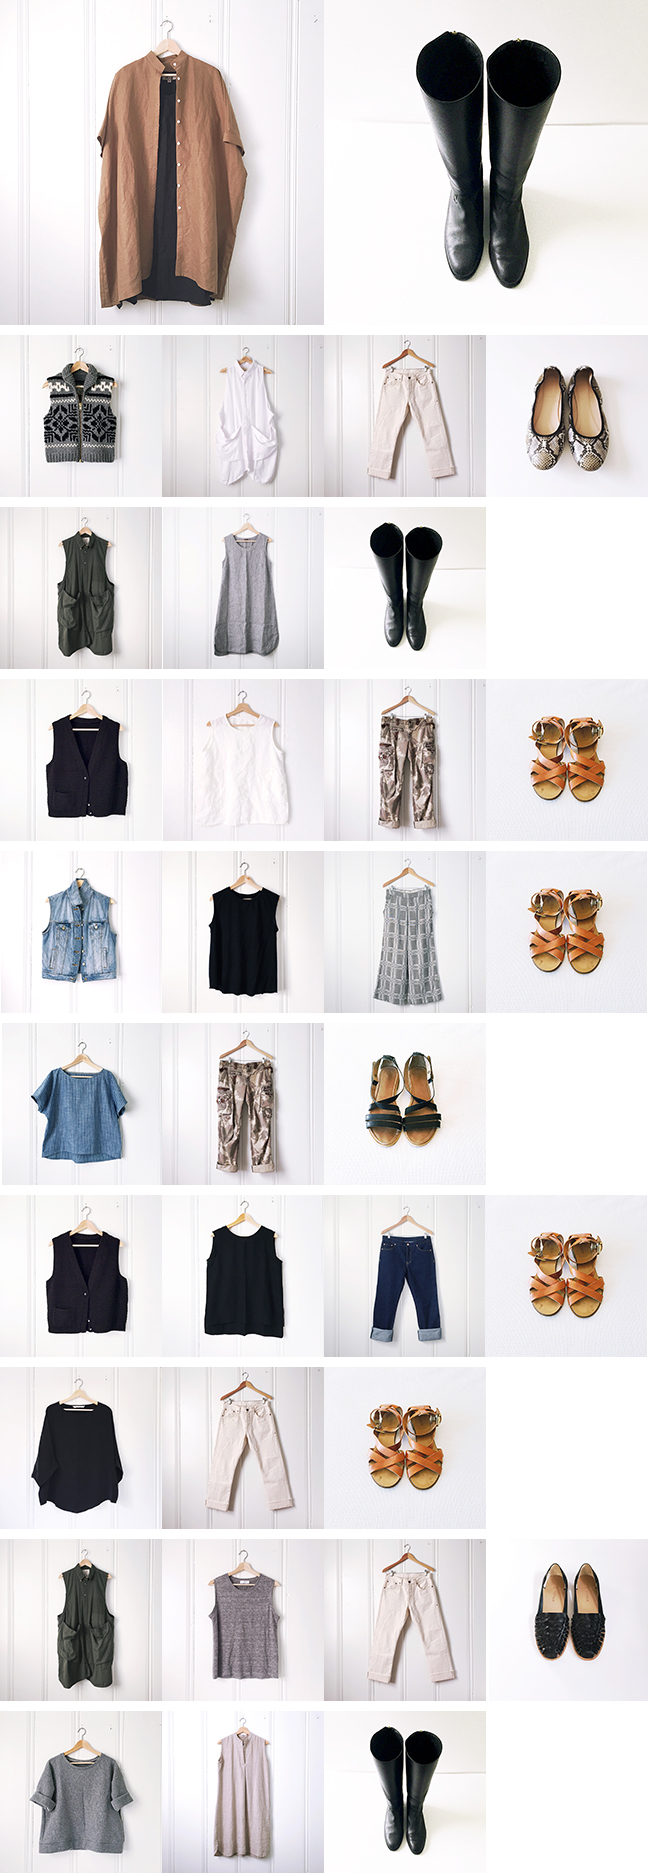 Outfits! : Pre-fall 2017